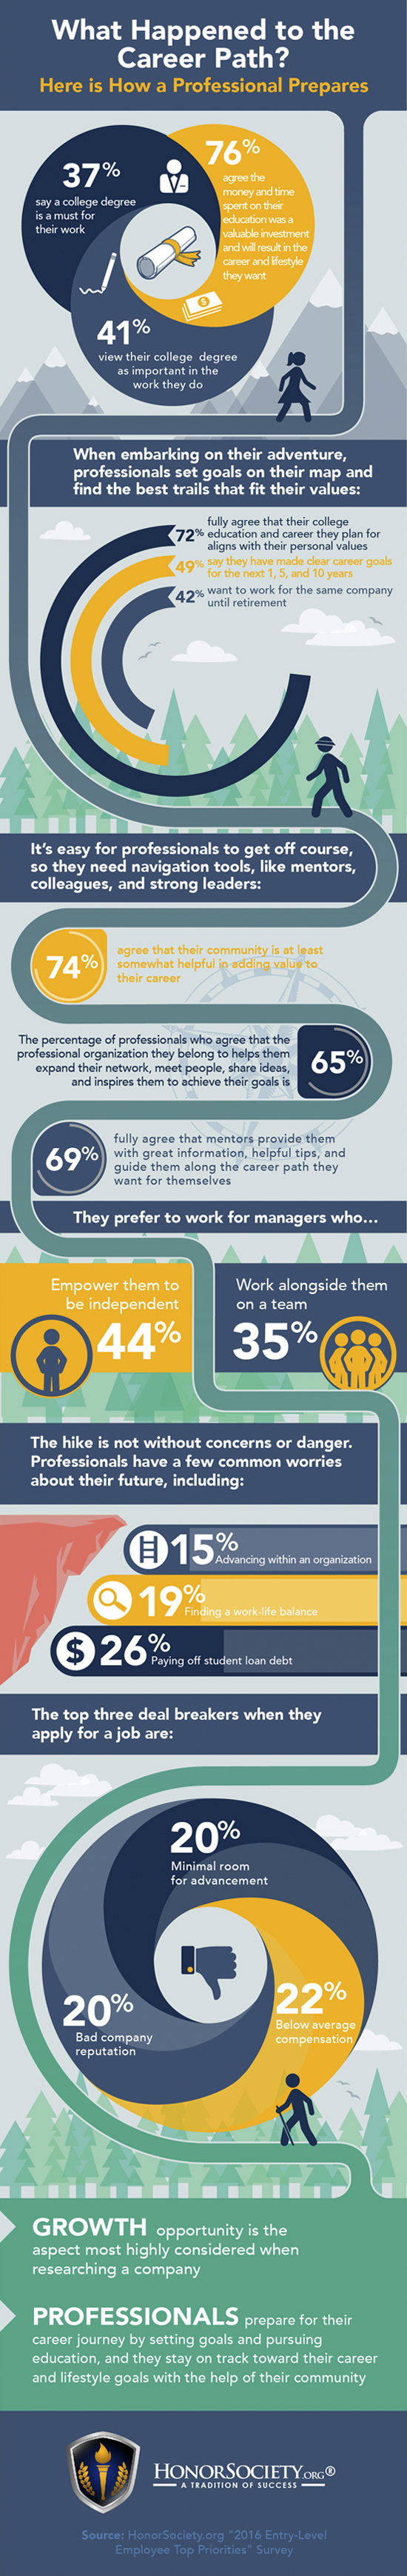 All You Need to Know About How Professionals Approach Their Career Path